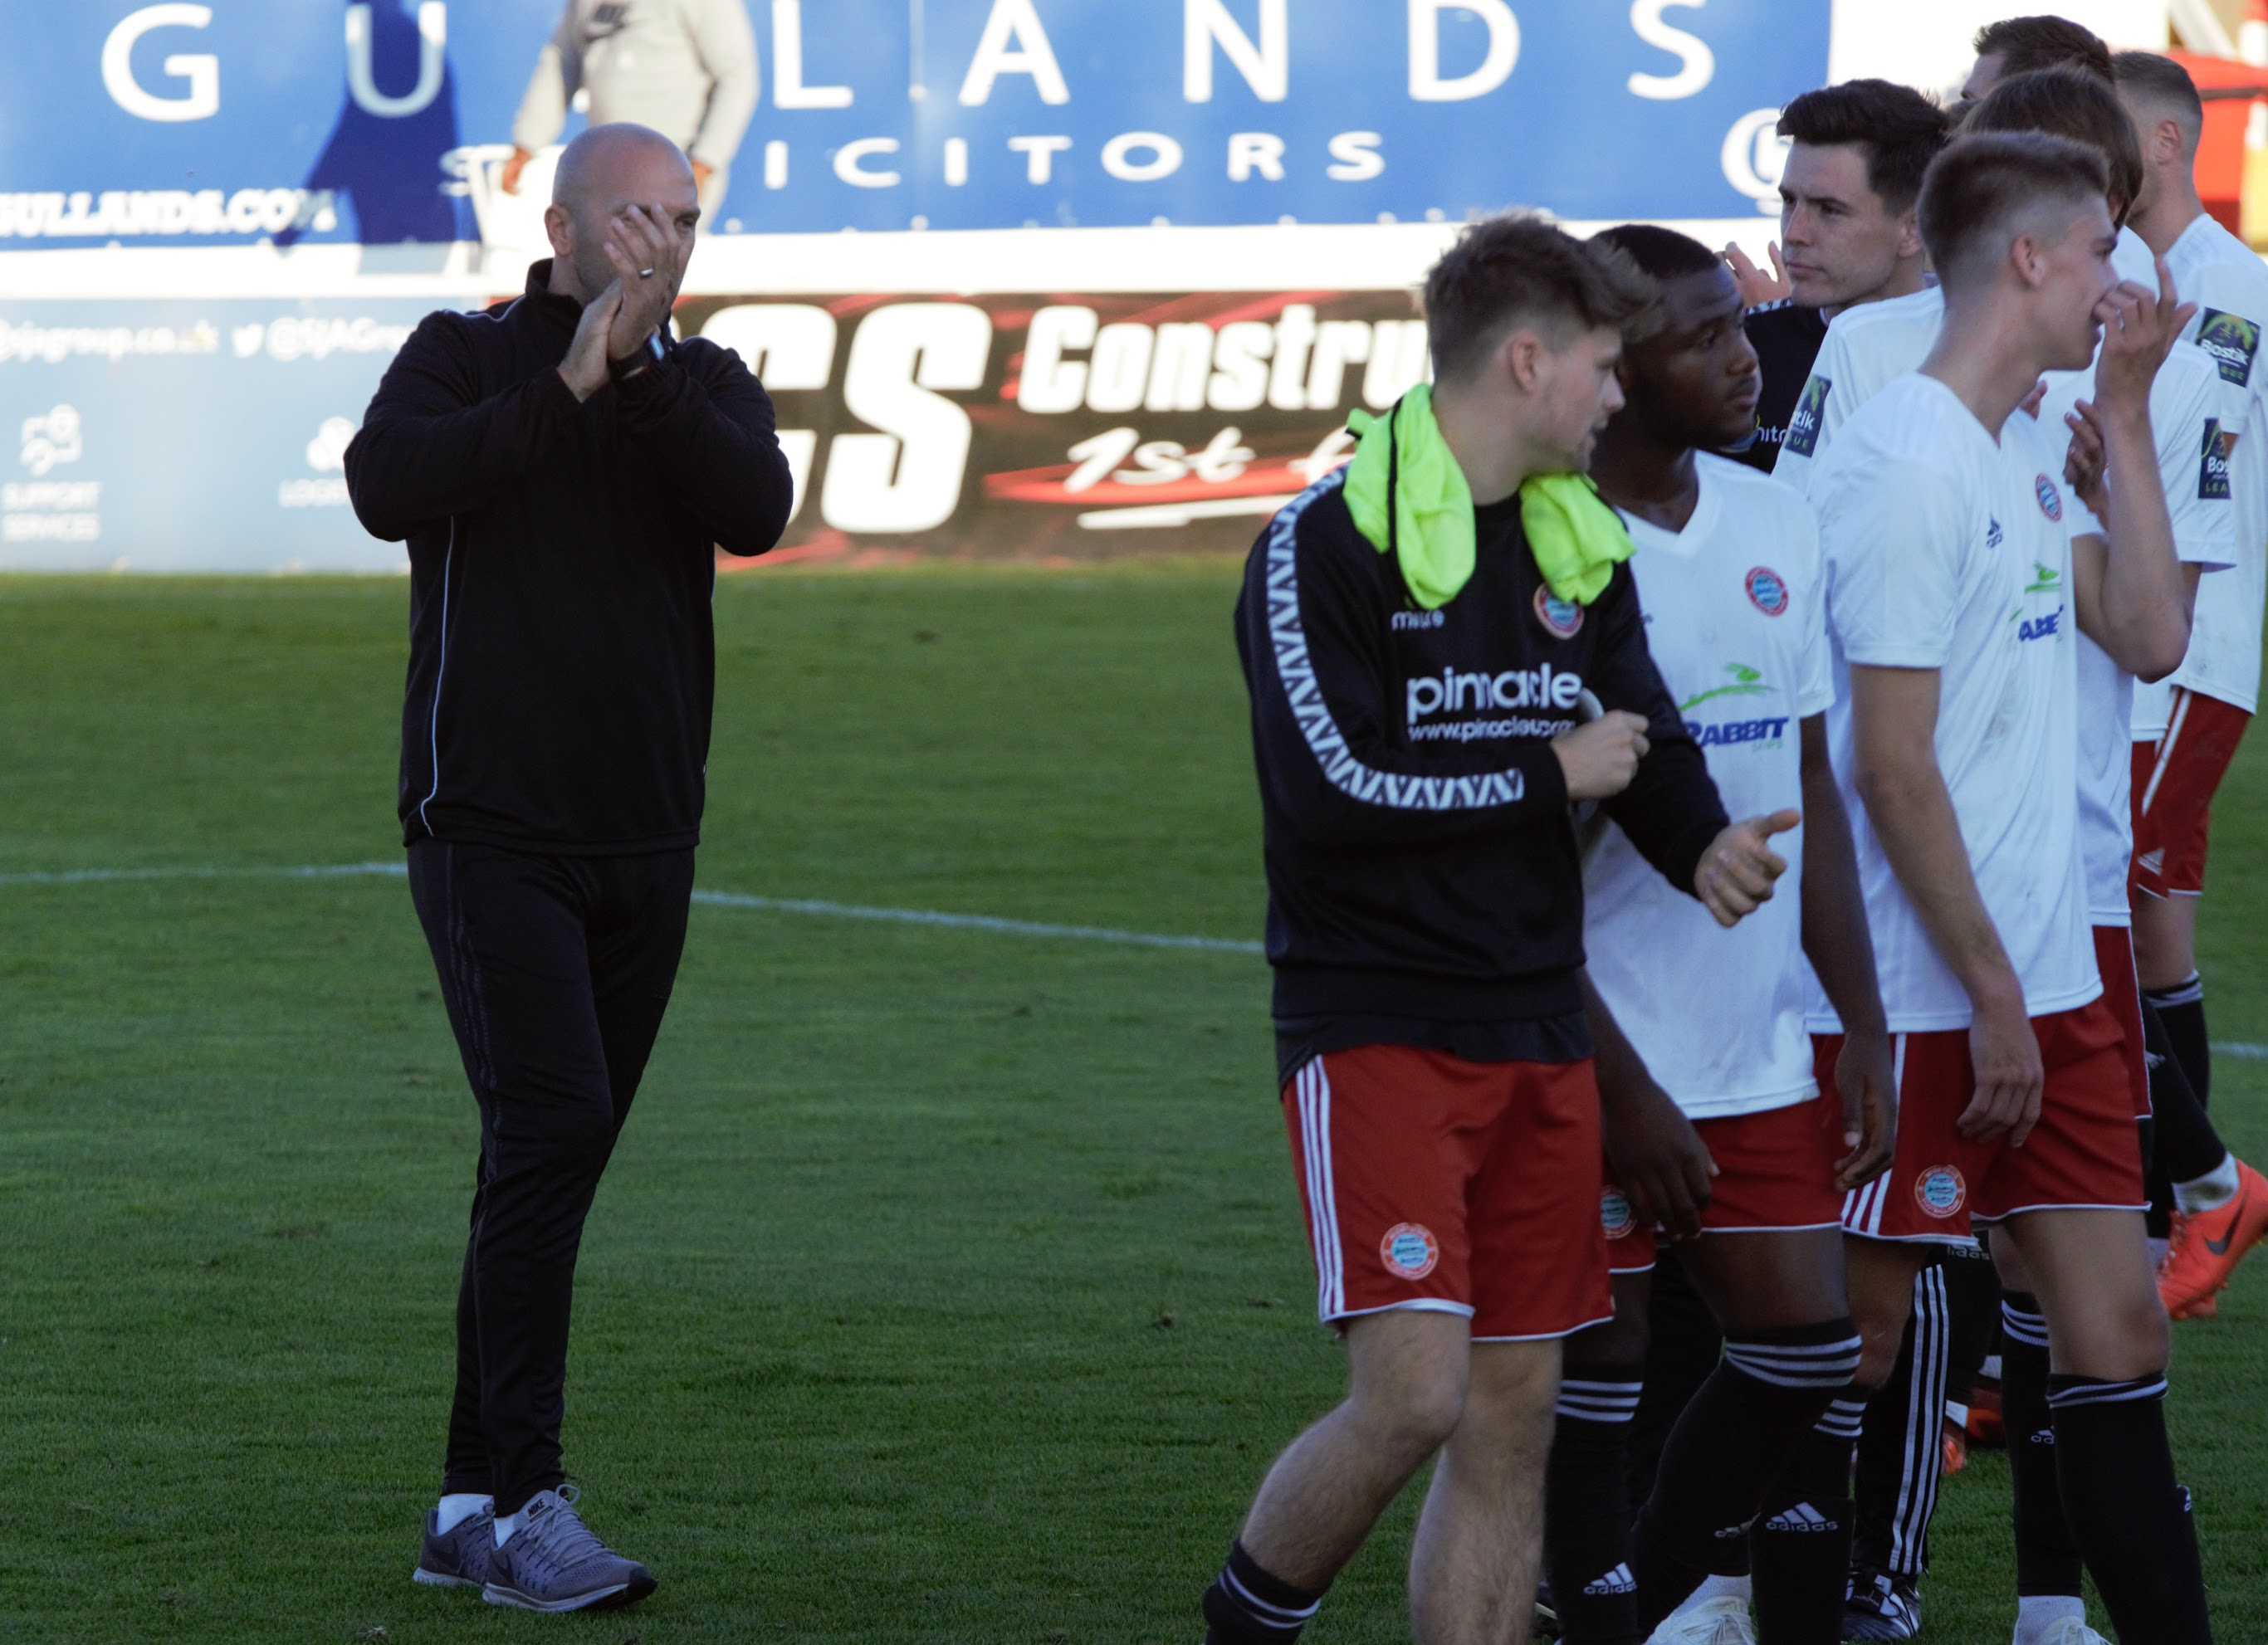 Read the full article - Hinshelwood reflects on a 'missed opportunity' as Worthing exit FA Cup